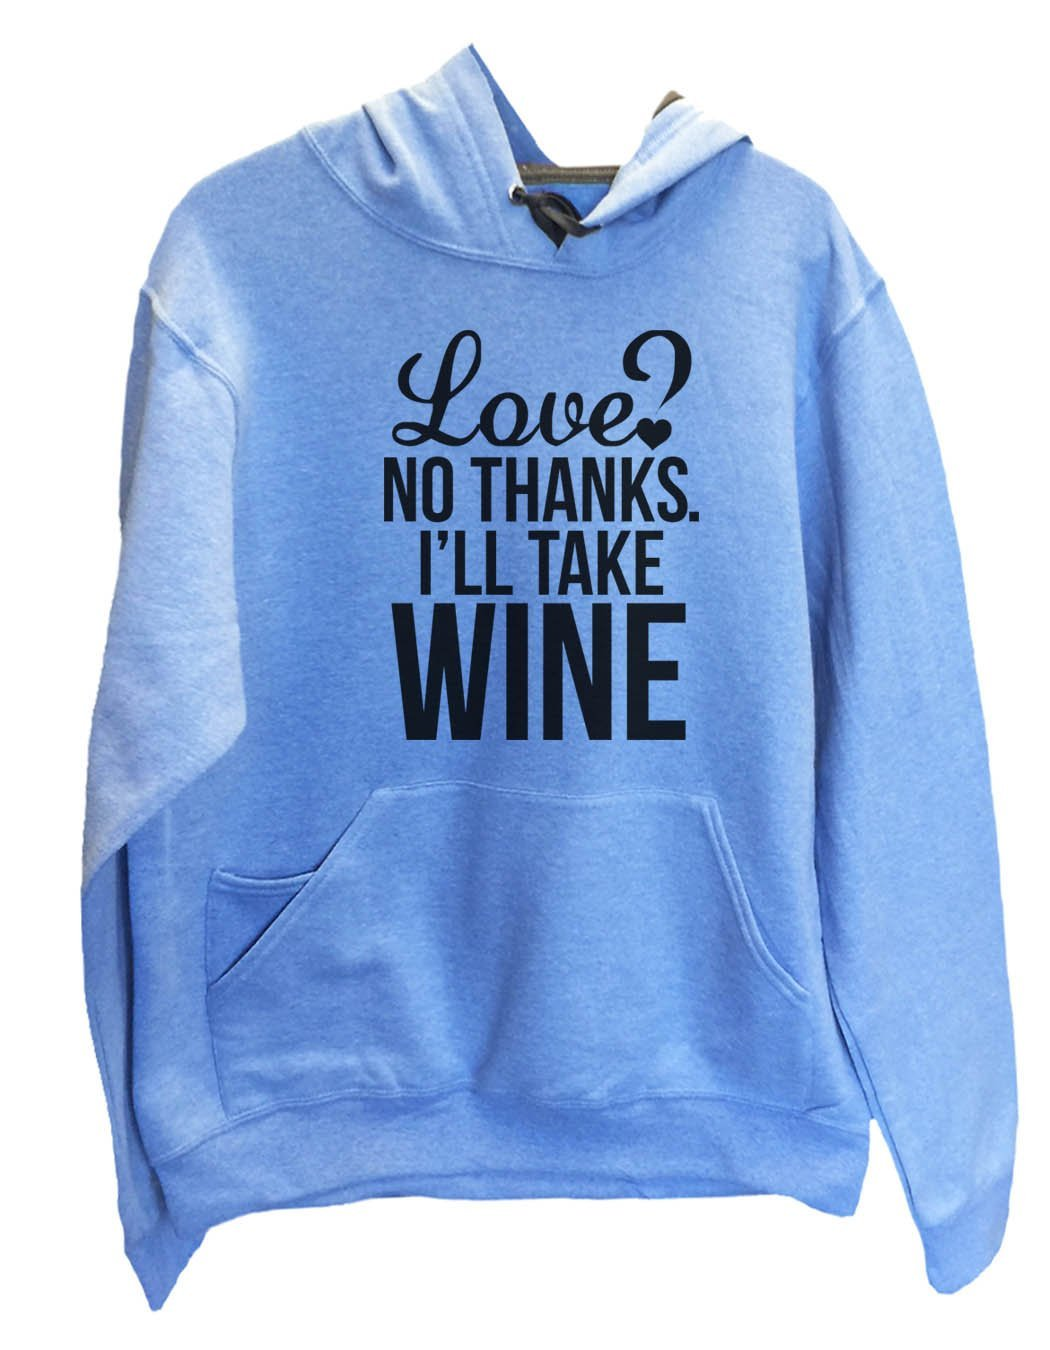 UNISEX HOODIE - Love? No Thanks. I'Ll Take Wine - FUNNY MENS AND WOMENS HOODED SWEATSHIRTS - 2137 Funny Shirt Small / North Carolina Blue